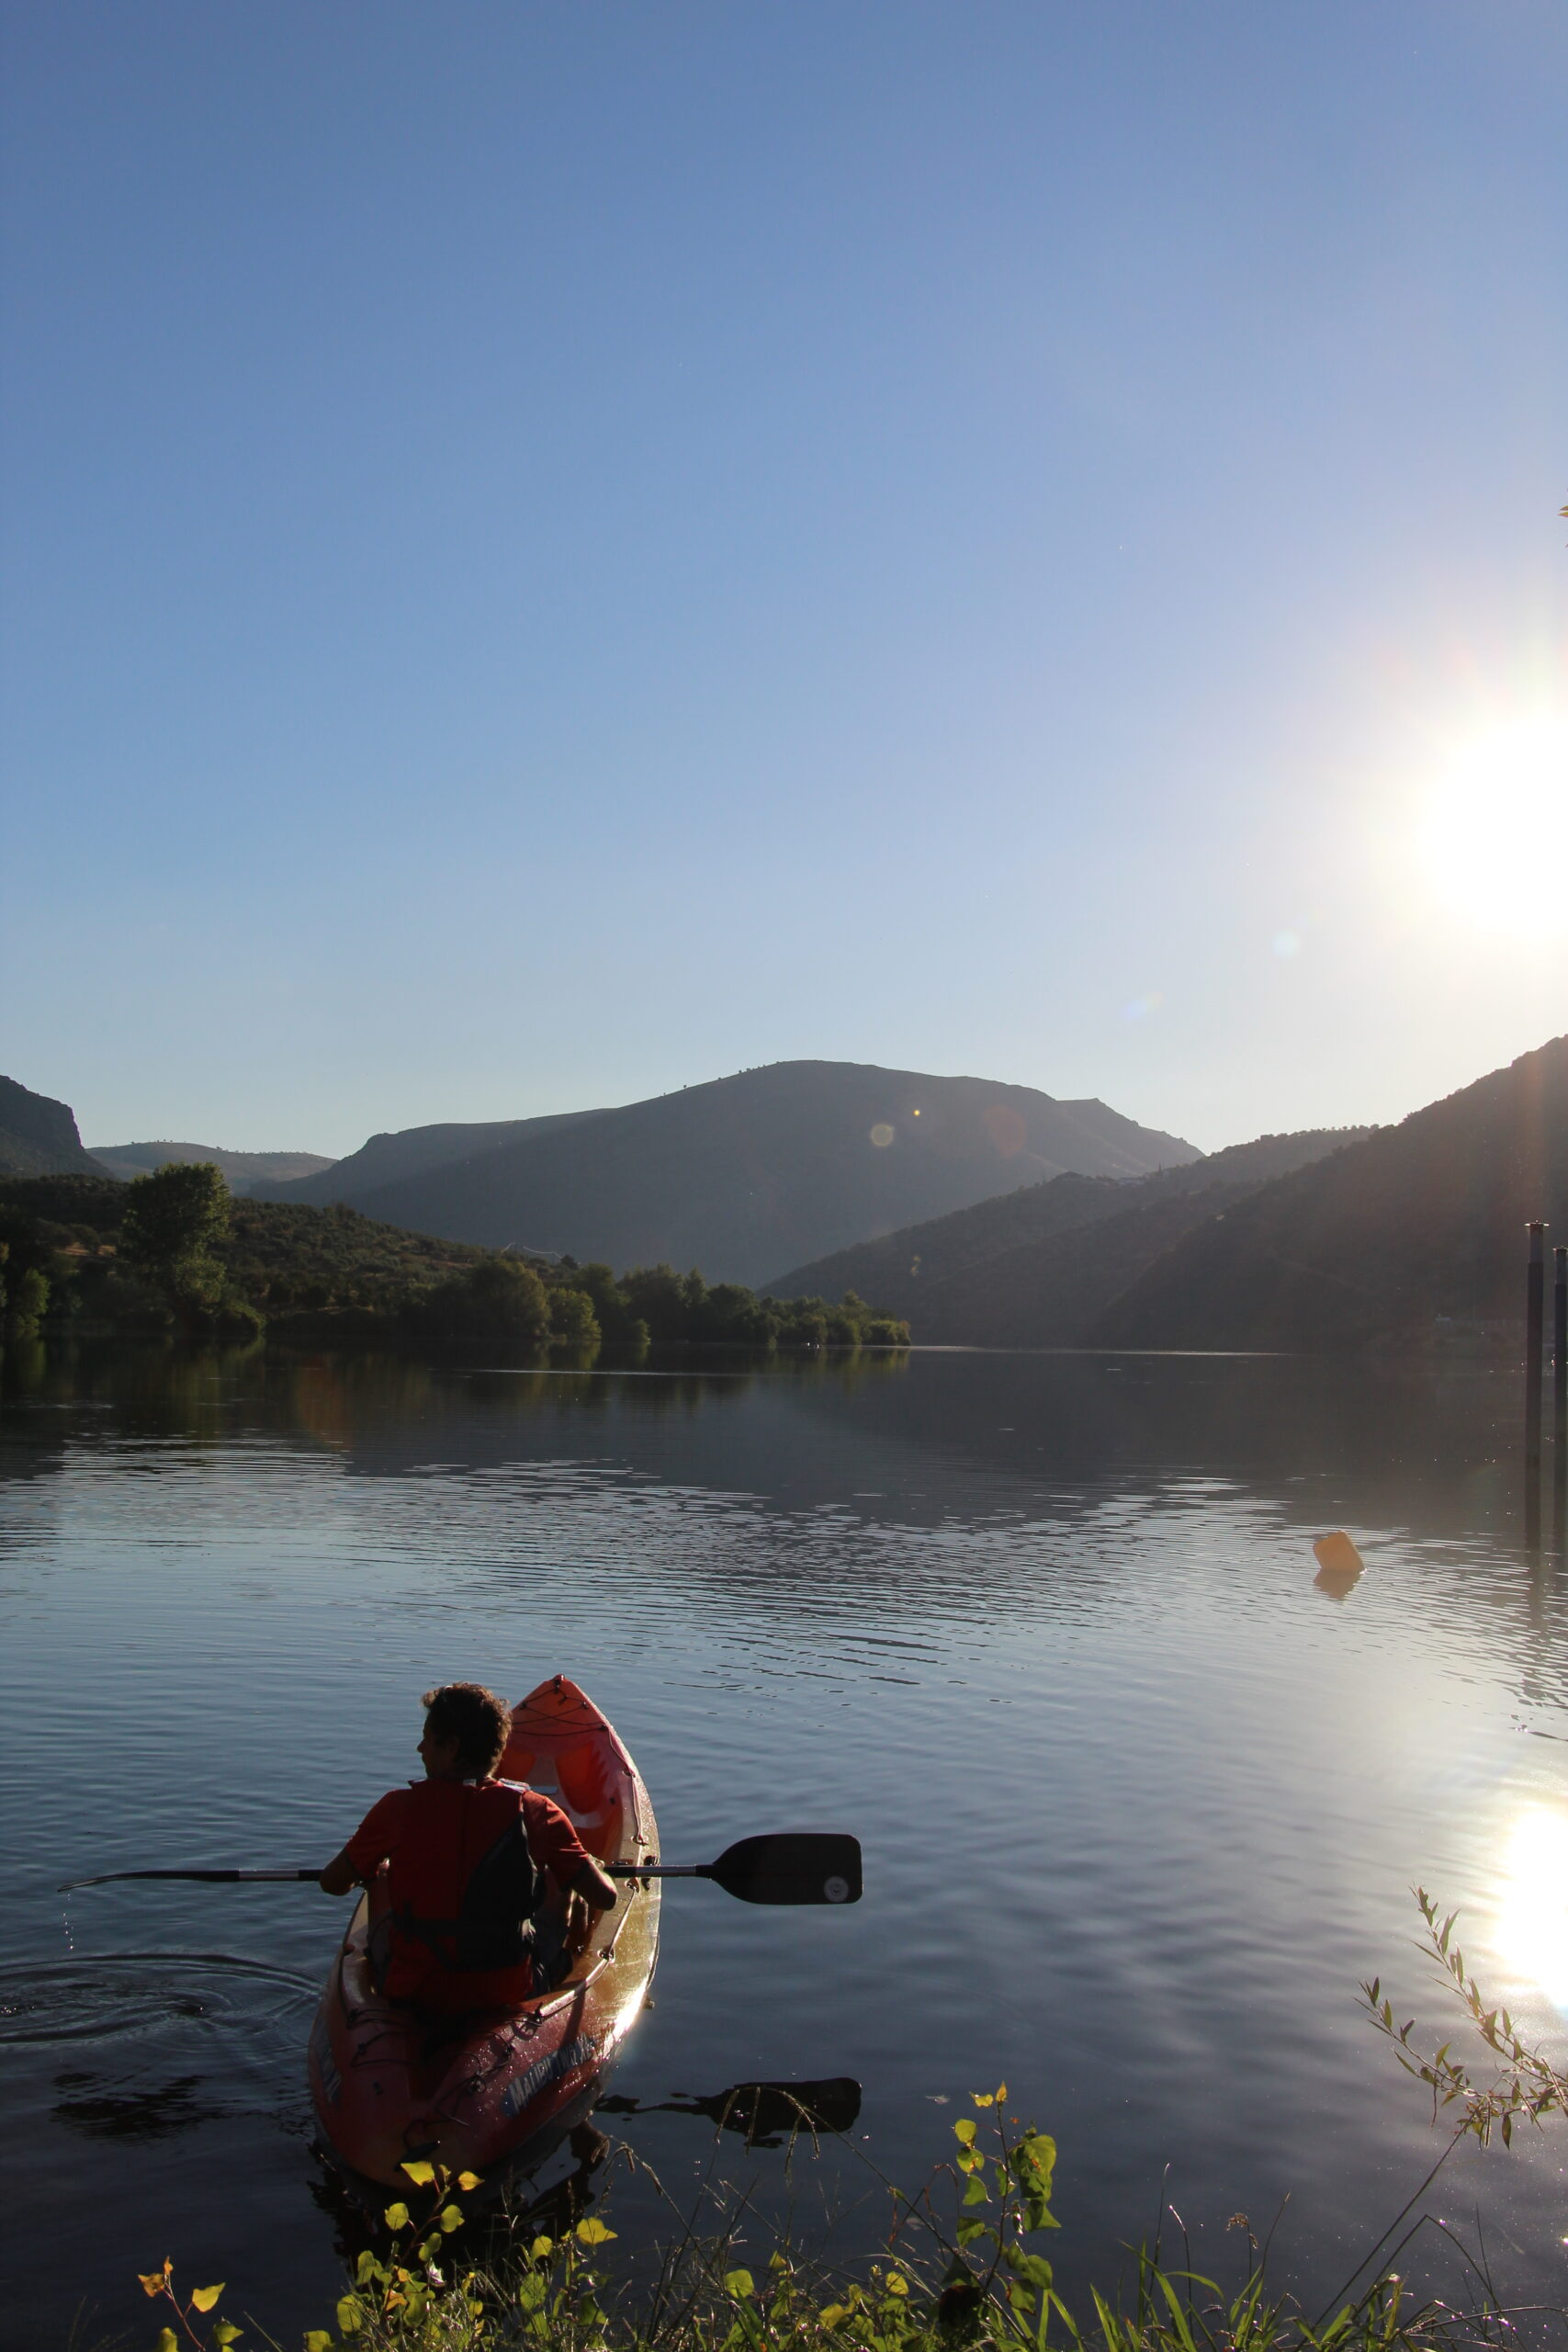 Kayaking in the Douro Valley